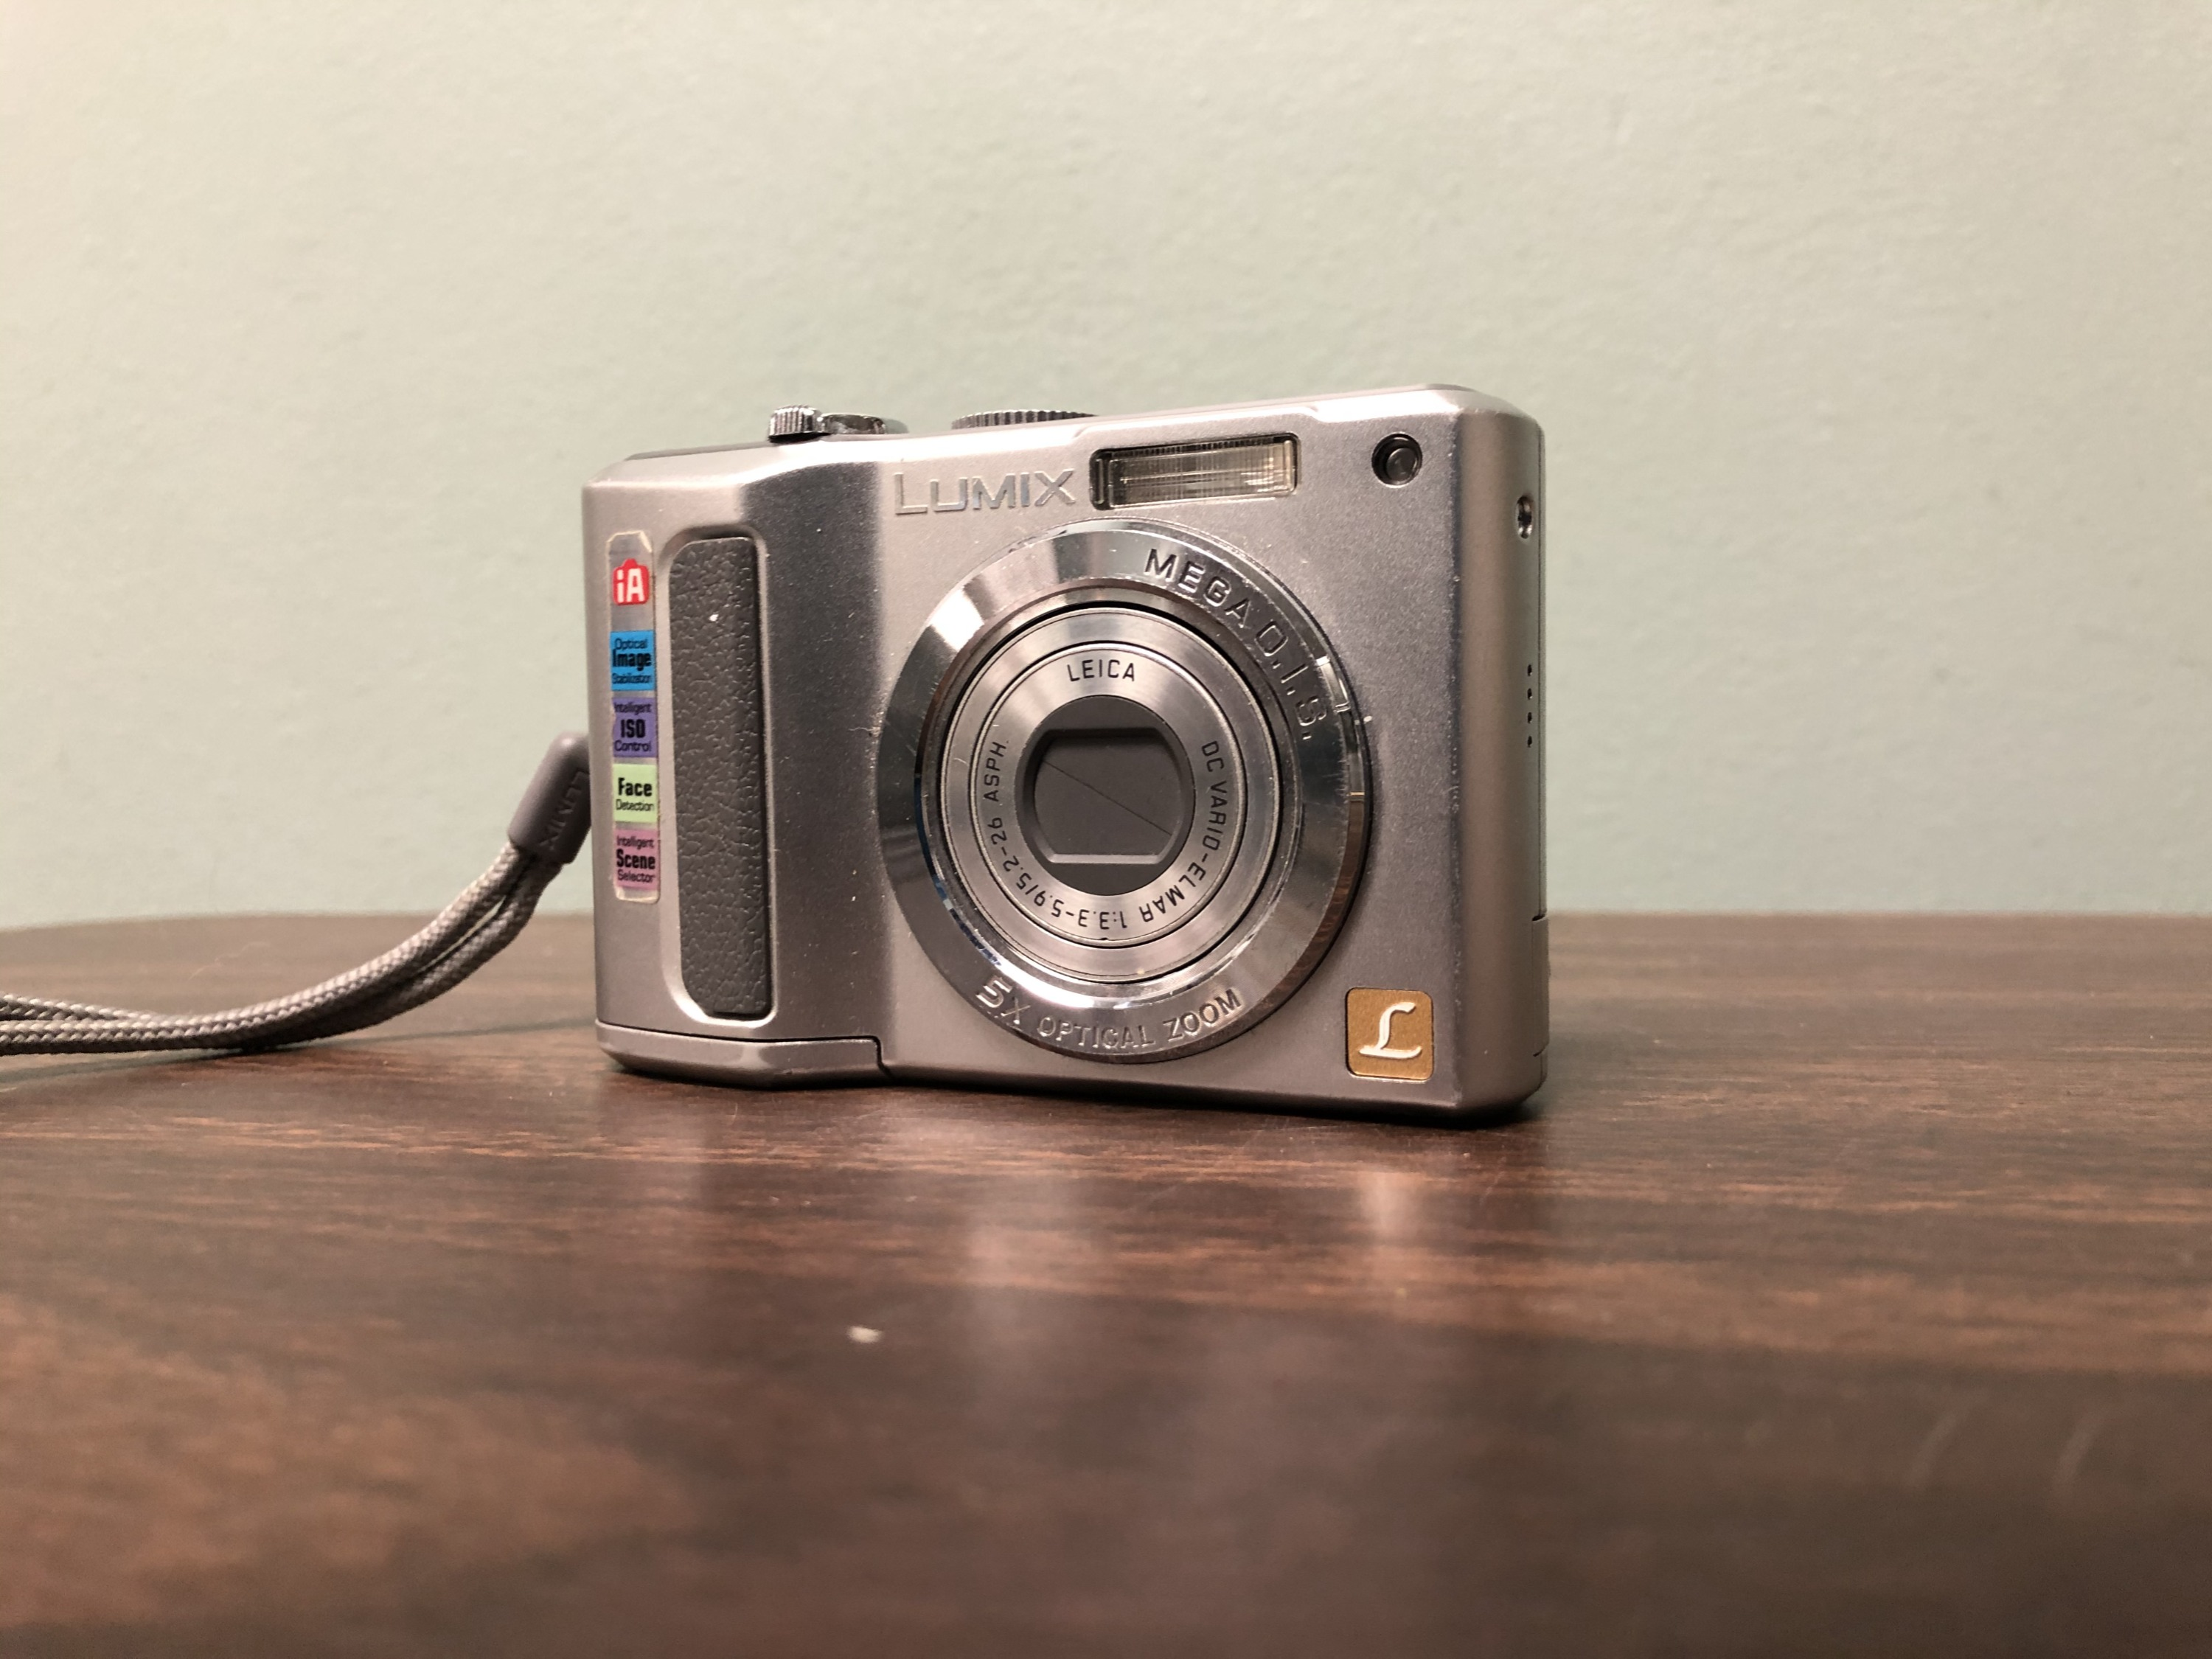 Panasonic Lumix Digital Camera (non functional)